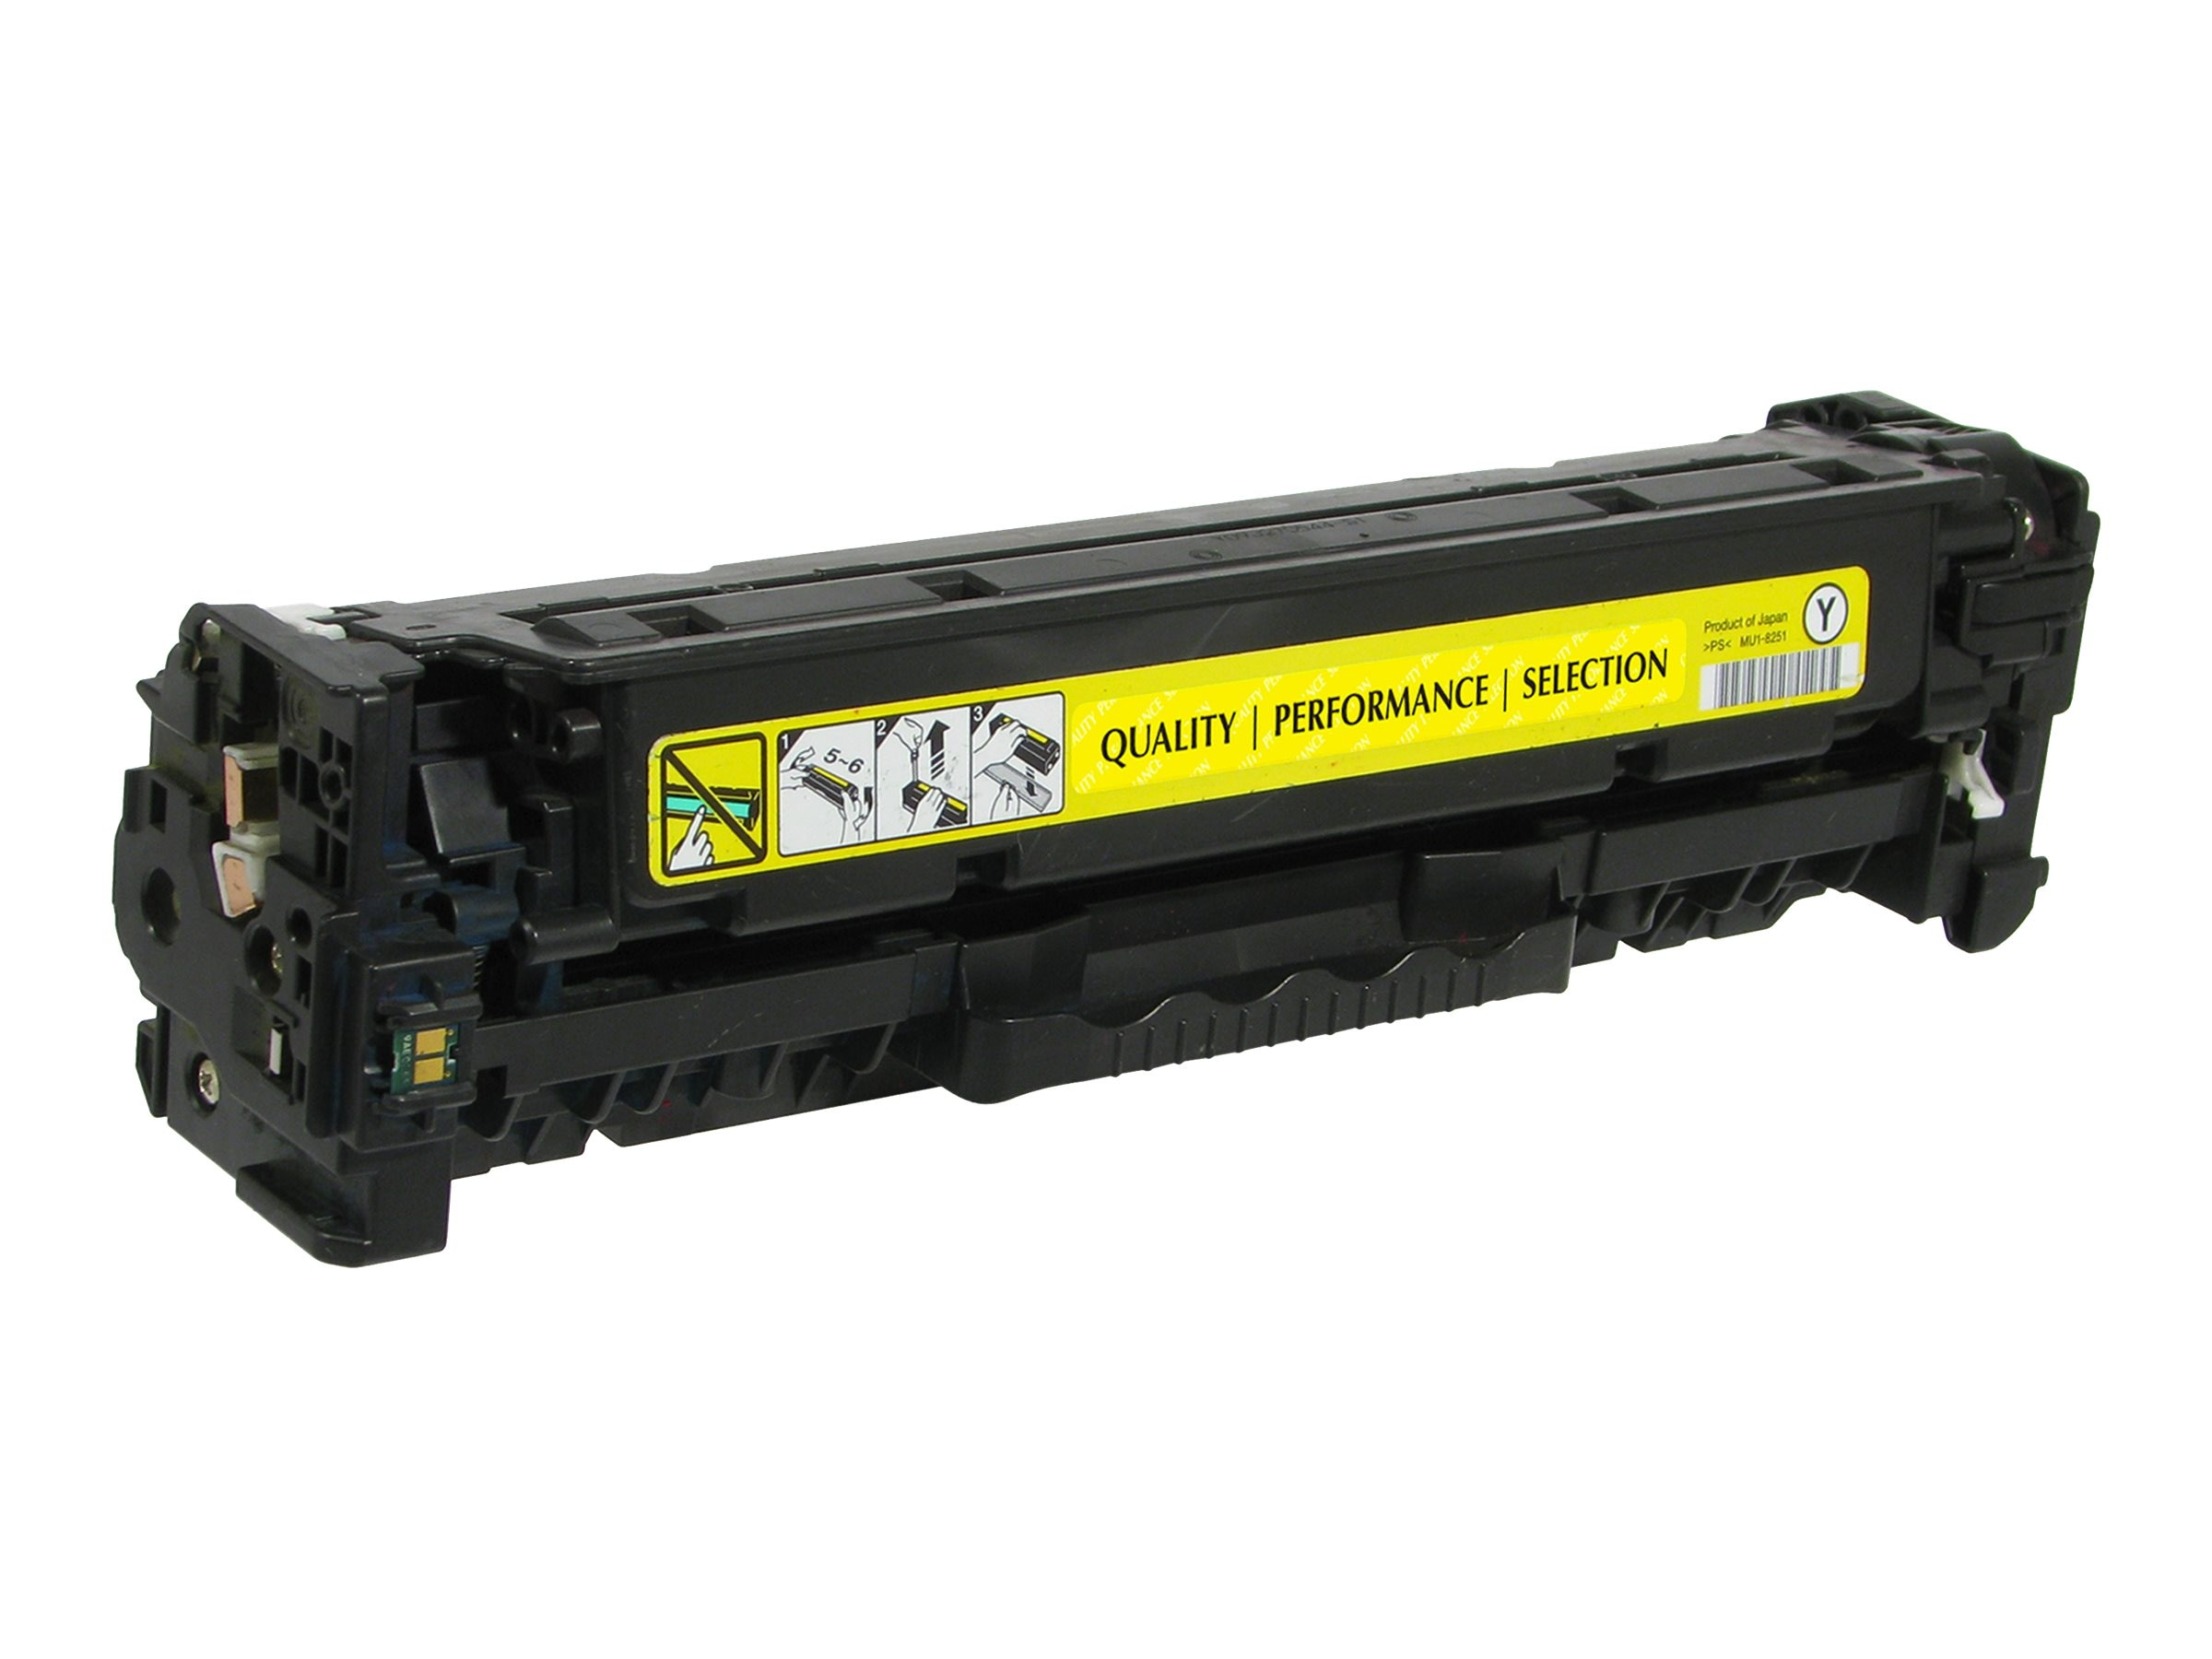 V7 CE412A Yellow Toner Cartridge for HP LaserJet Pro Color M375 M451